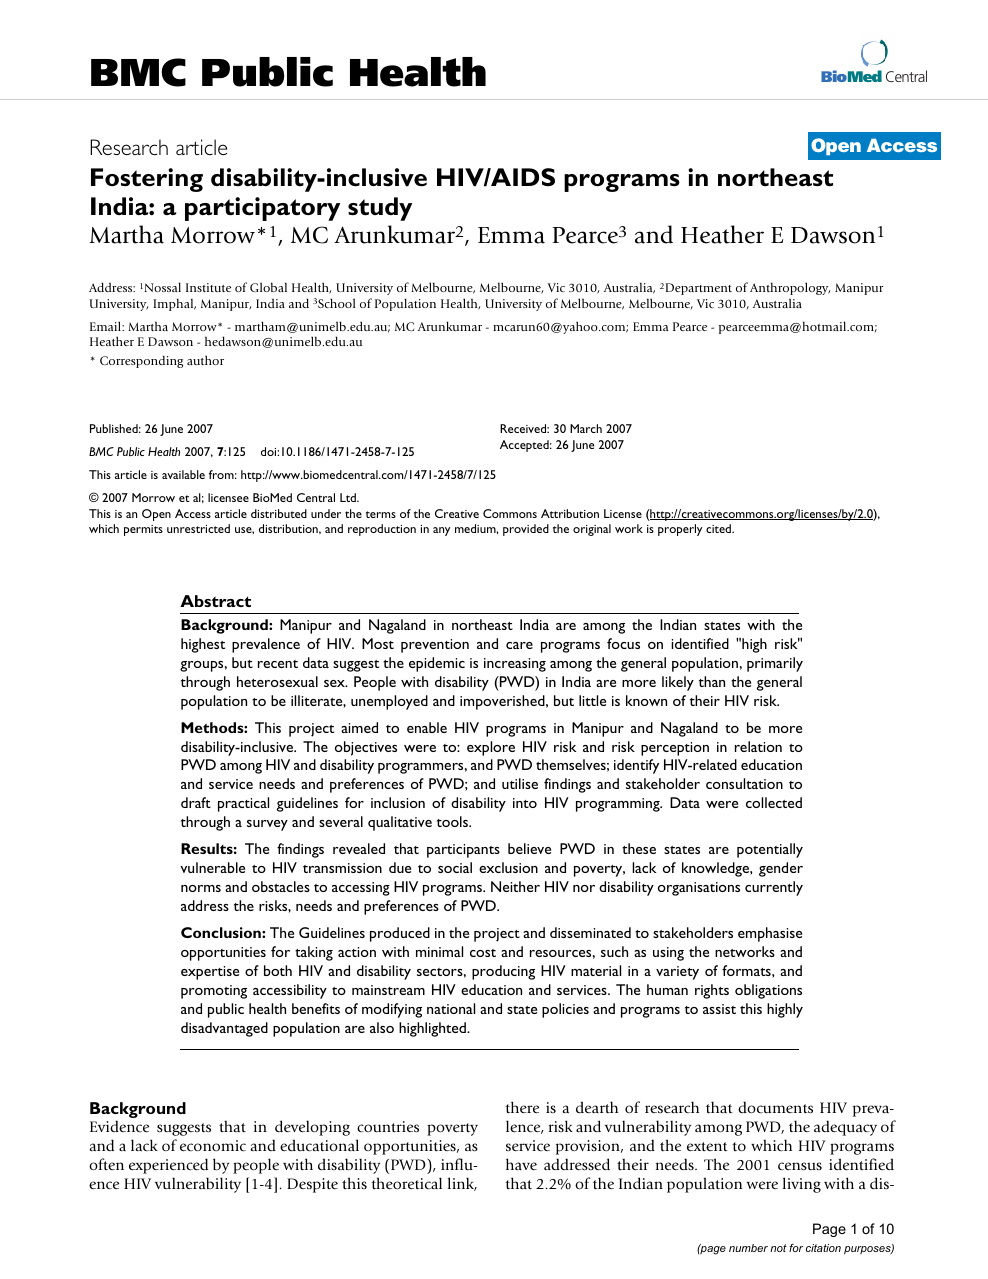 Fostering Disabilityinclusive Hivaids Programs In Northeast India  Read Paper